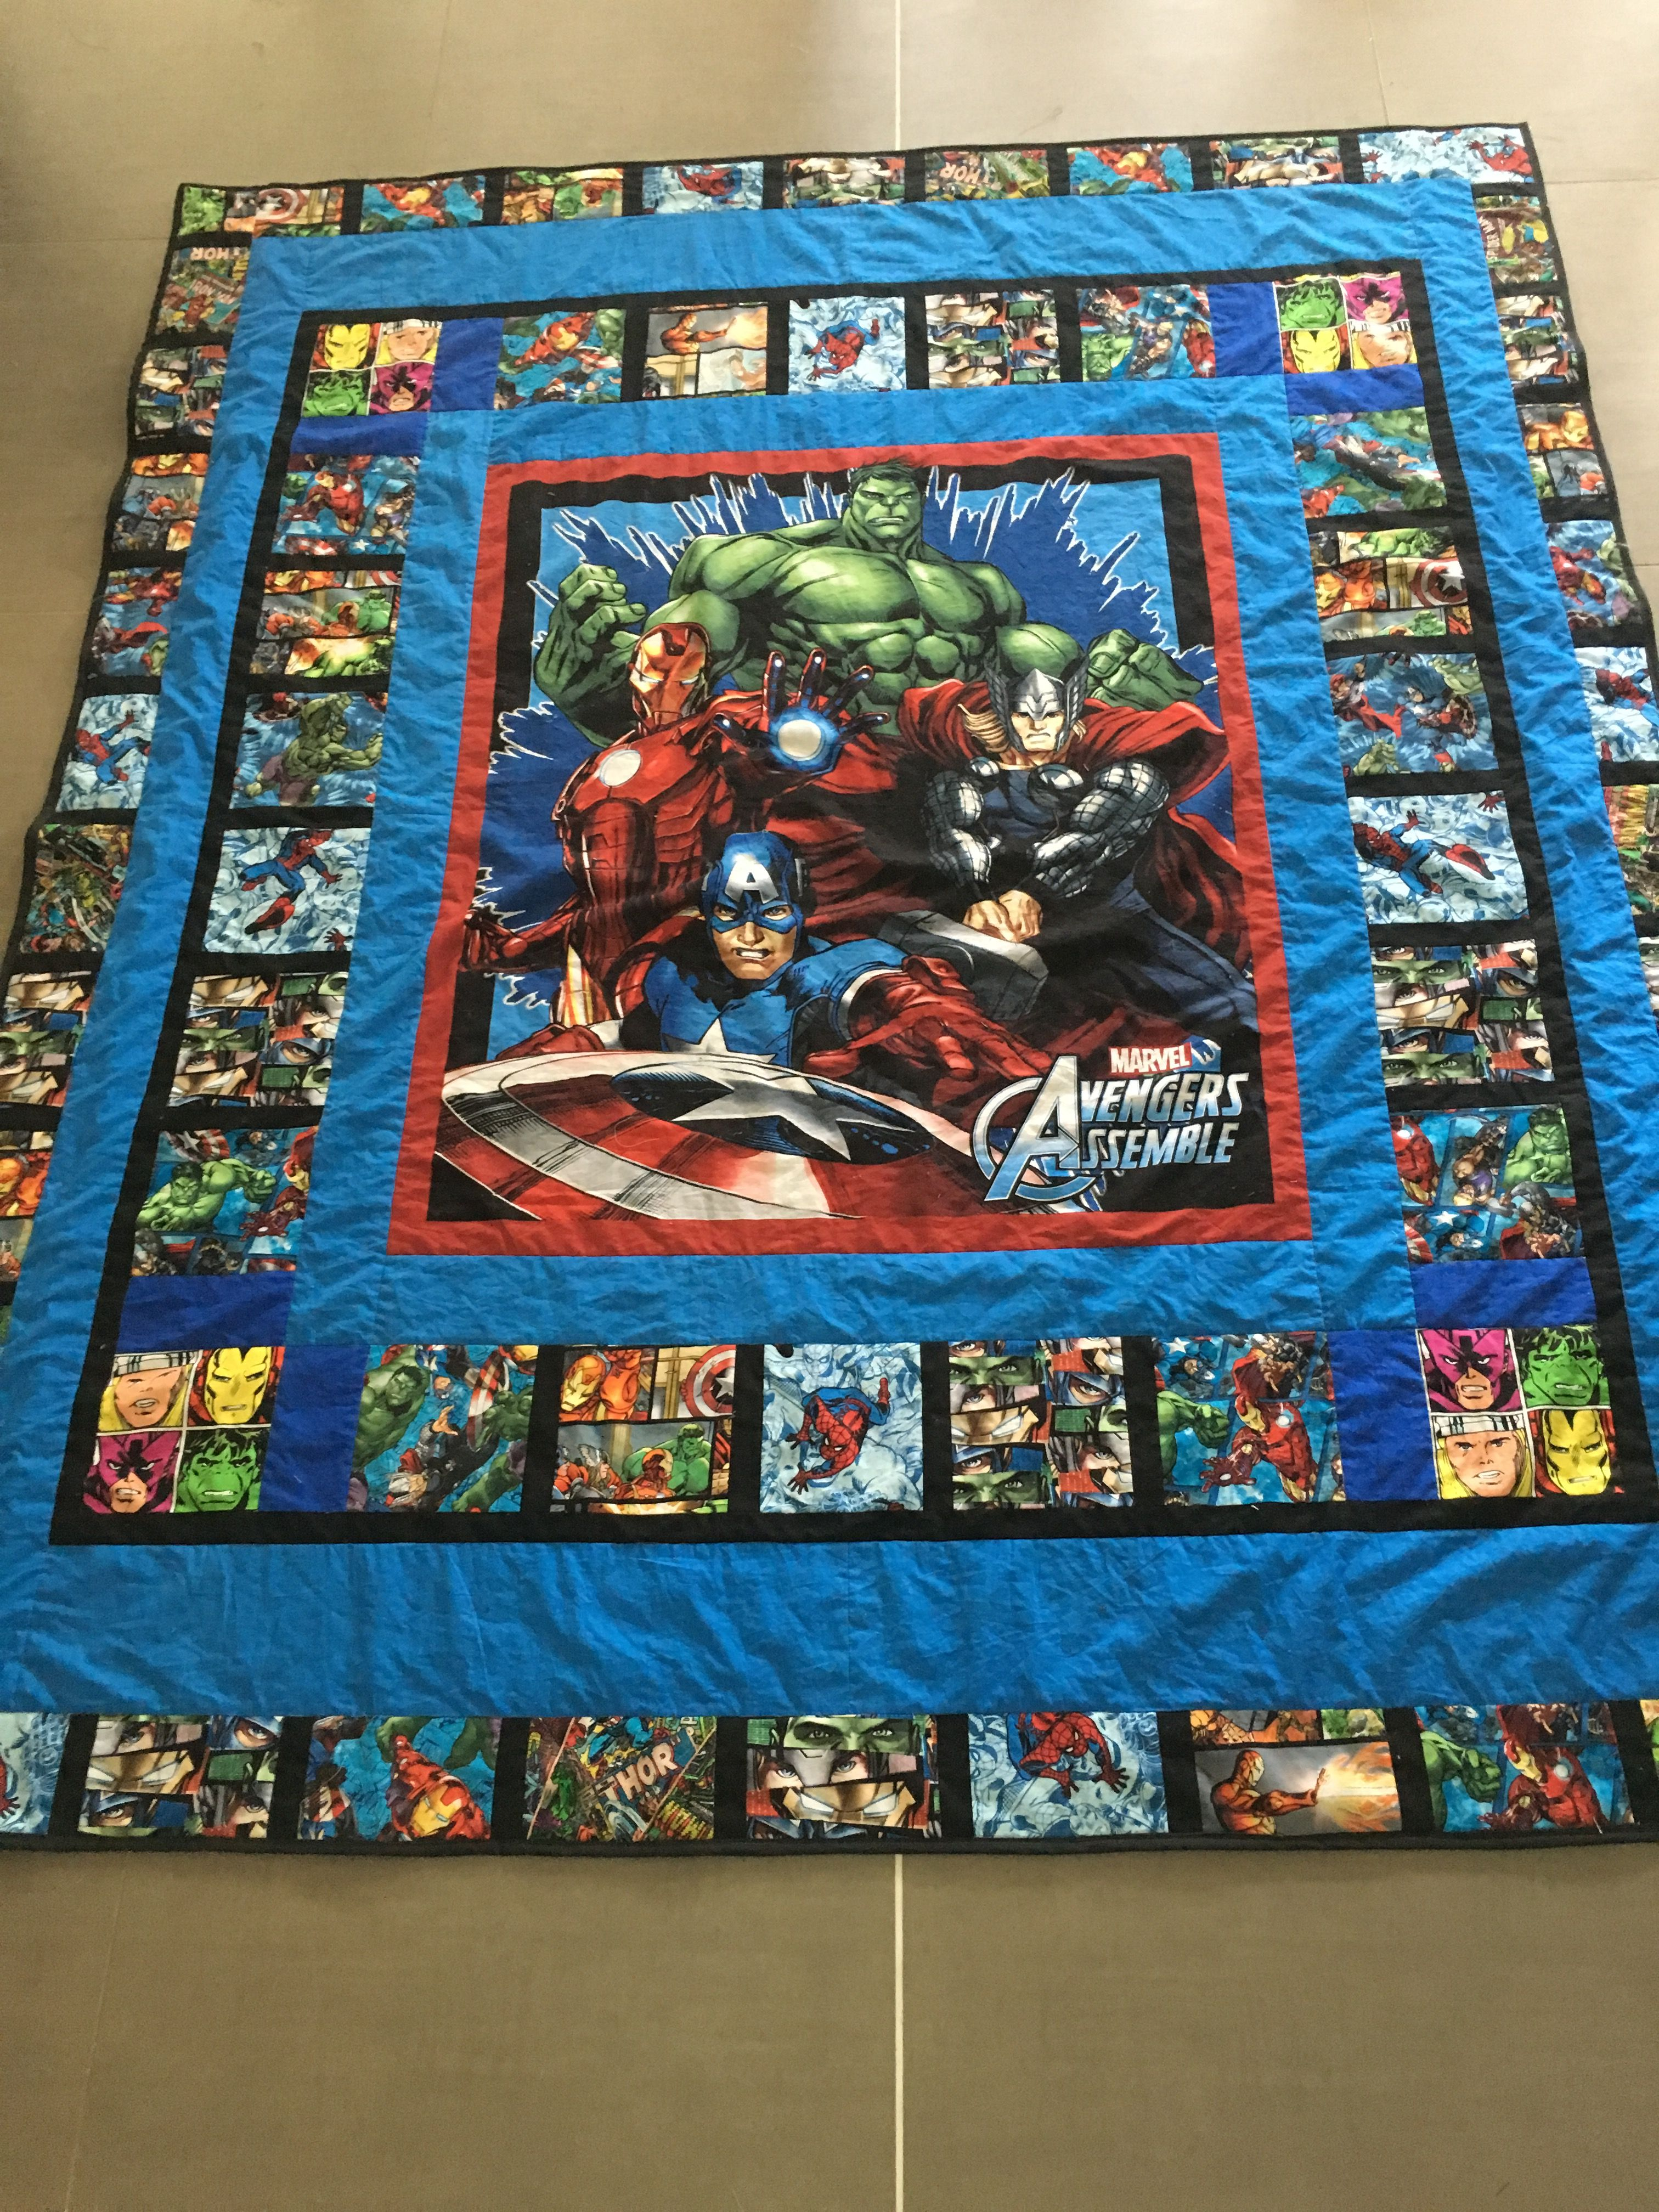 room bed view twin avengers roomshot bedroom hi res chair products delta upholstered set children